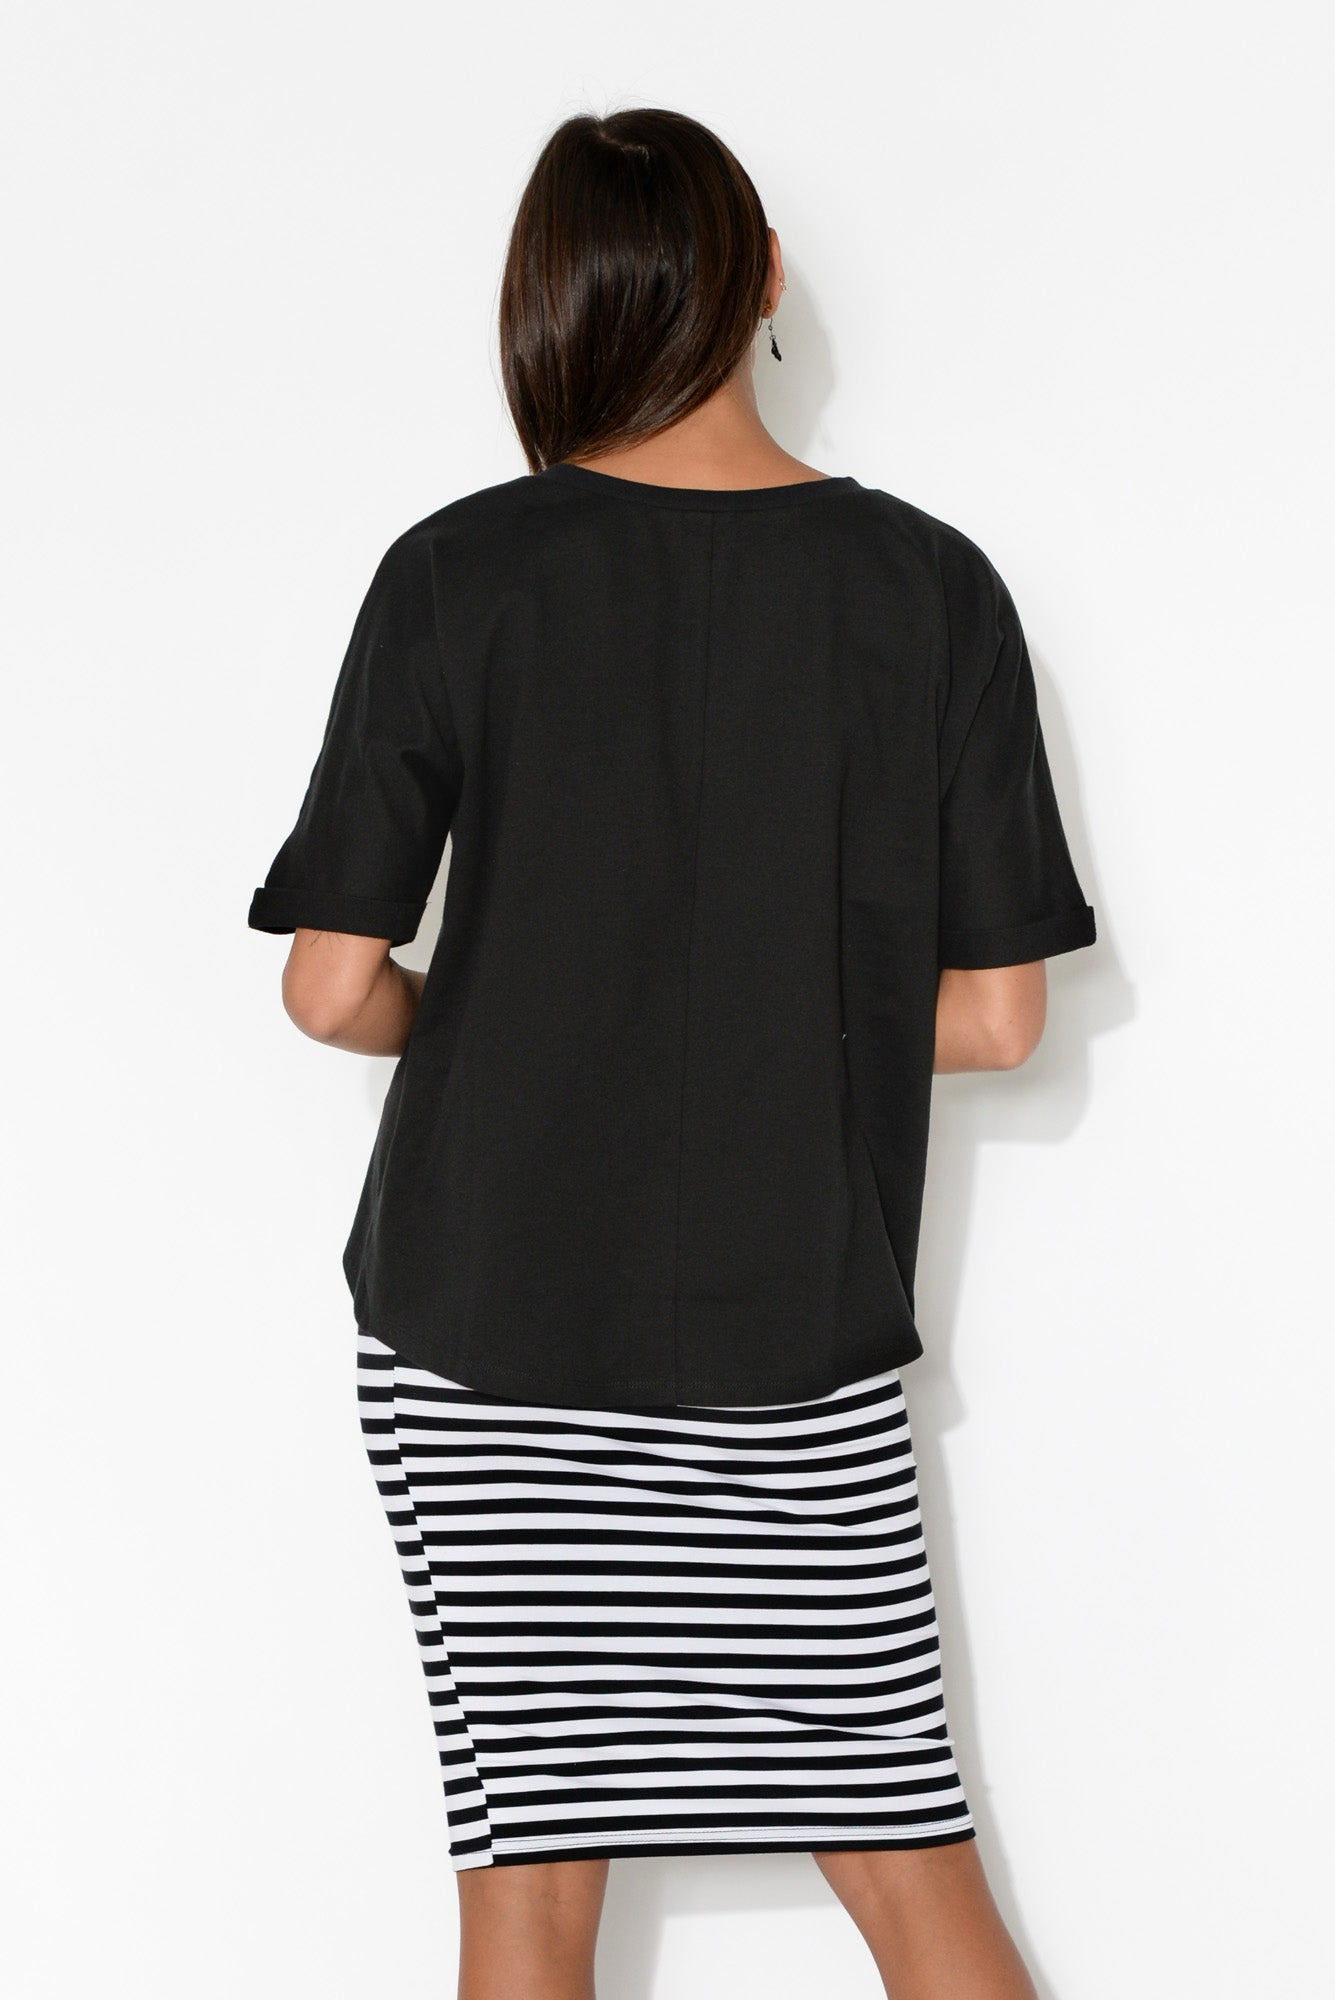 Chet Black Short Sleeve Jumper